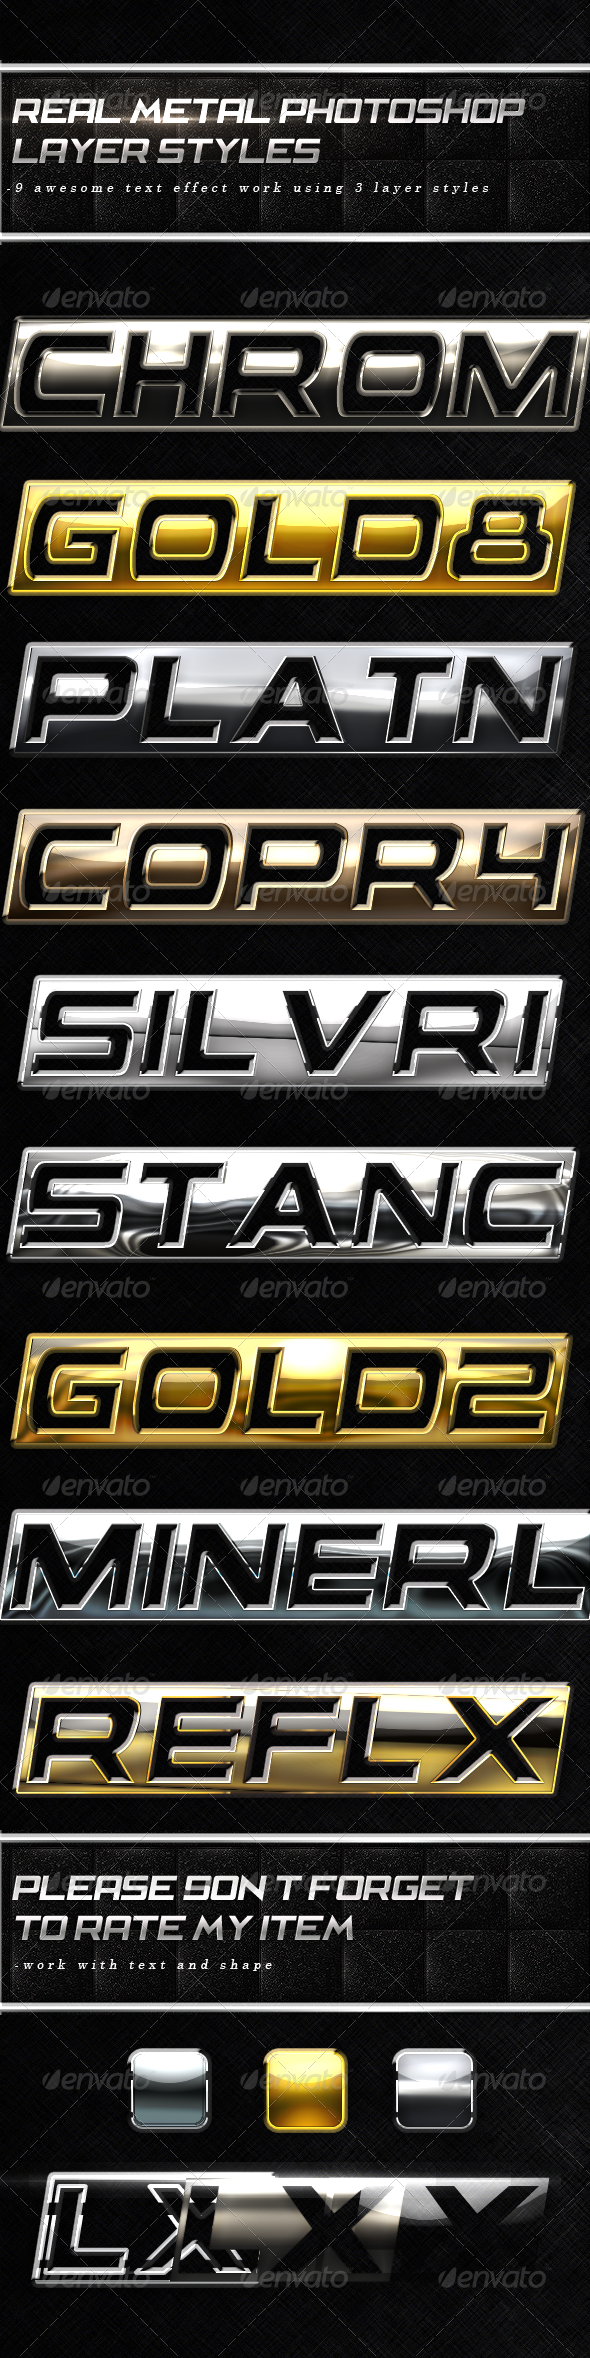 Real Metal Layer Styles 1 Text Effects Styles